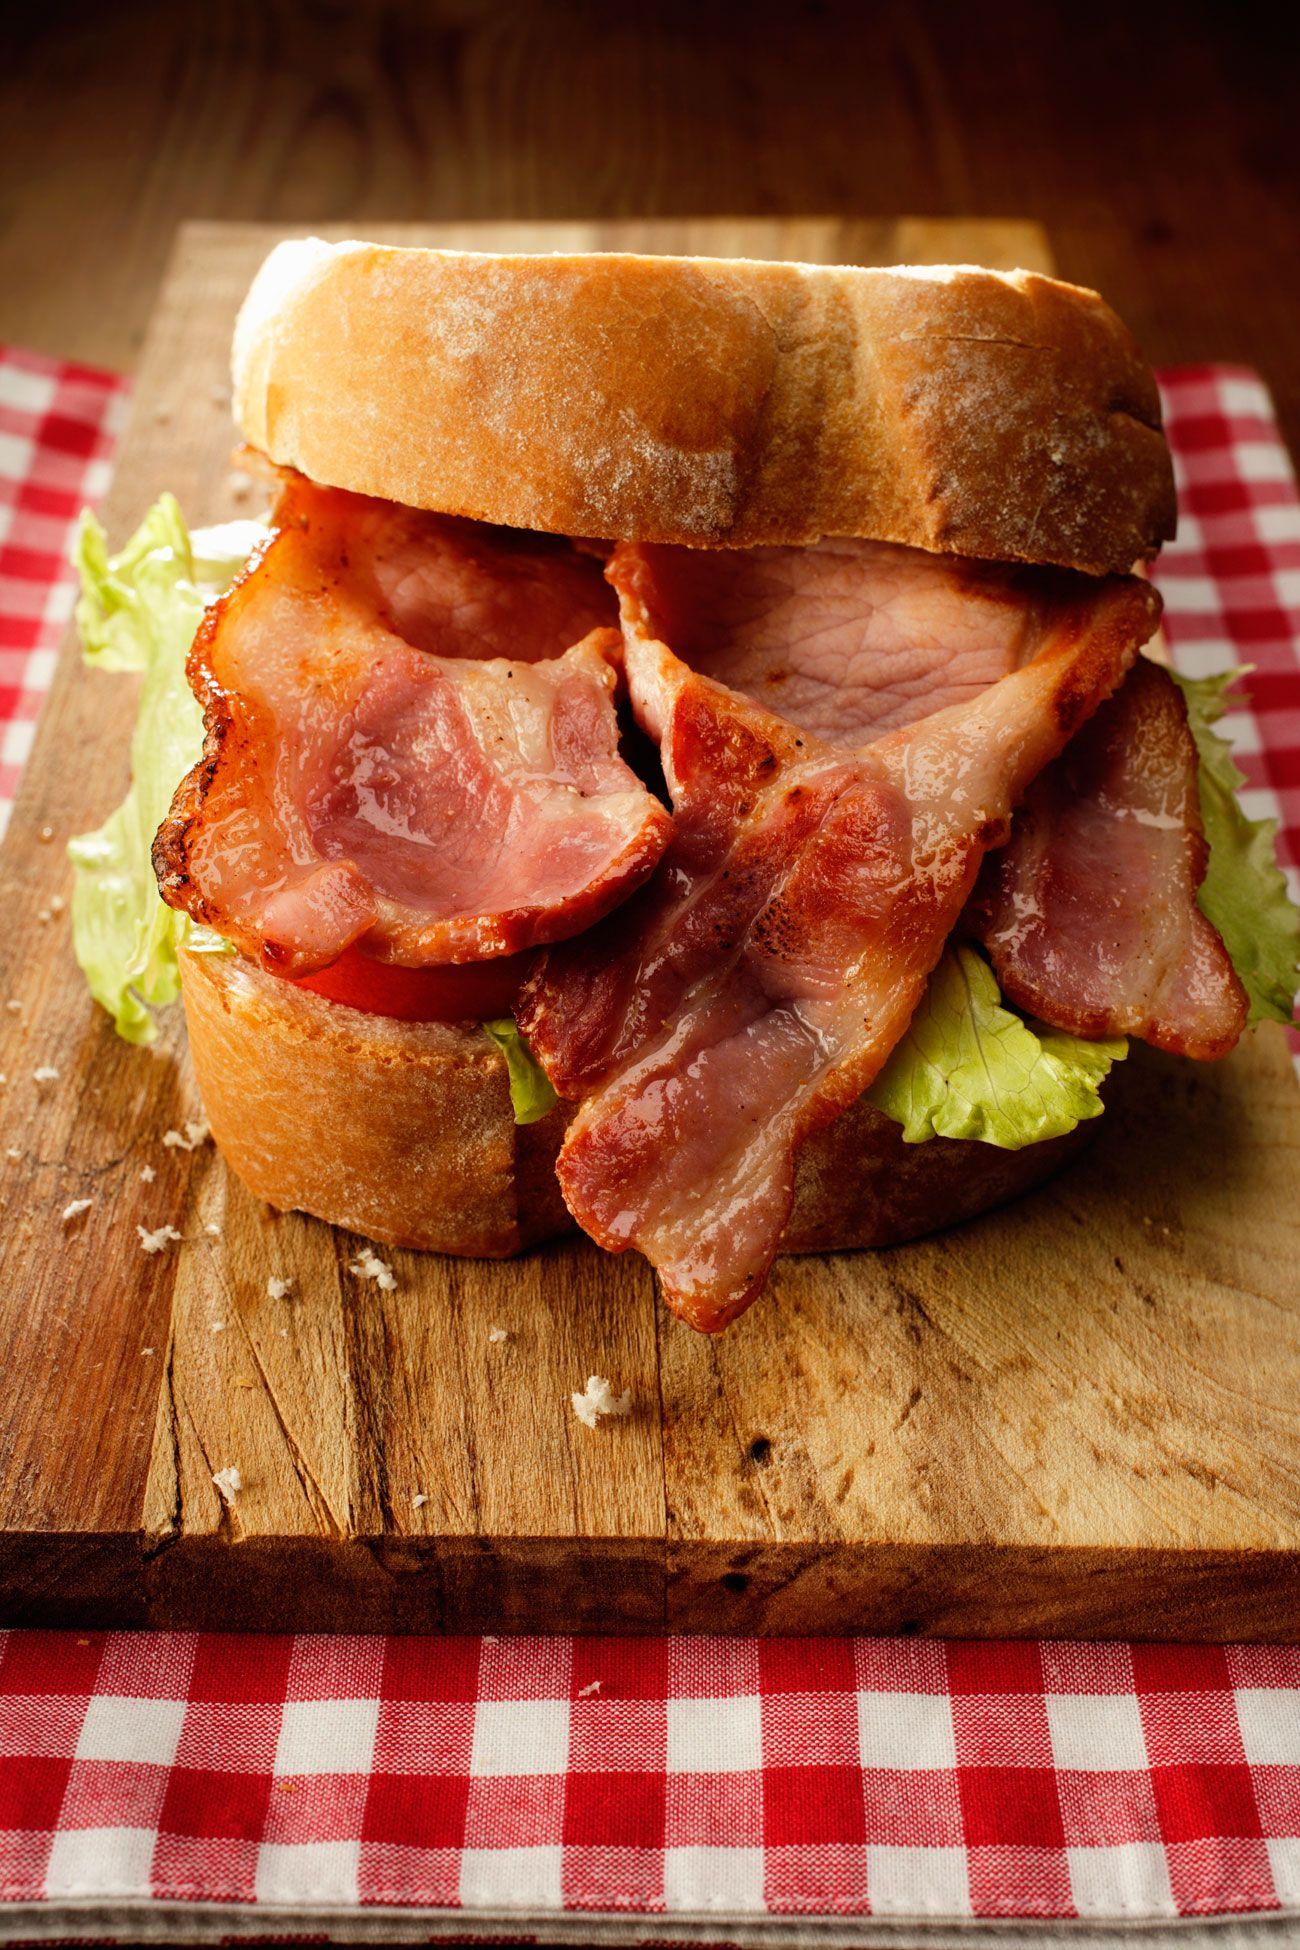 Bacon country giveaways